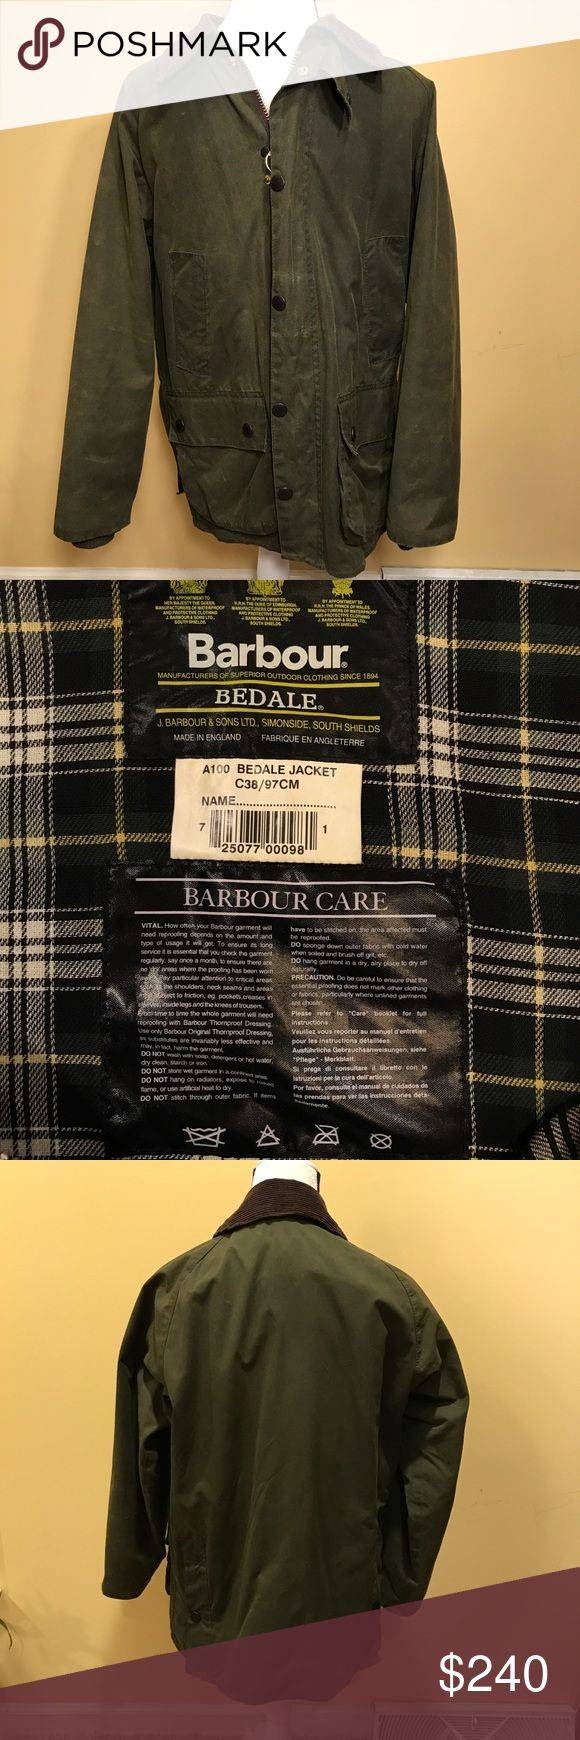 Barbour Men's Bedale Wax Coat - Size 38 Small - great condition  - flannel lining - brown corduroy collar - Olive Green - minimal signs of wear or marking - sleeve length from armpit: 20.5 inches - chest length: 22 inches - length: 28 inches Barbour Jackets & Coats